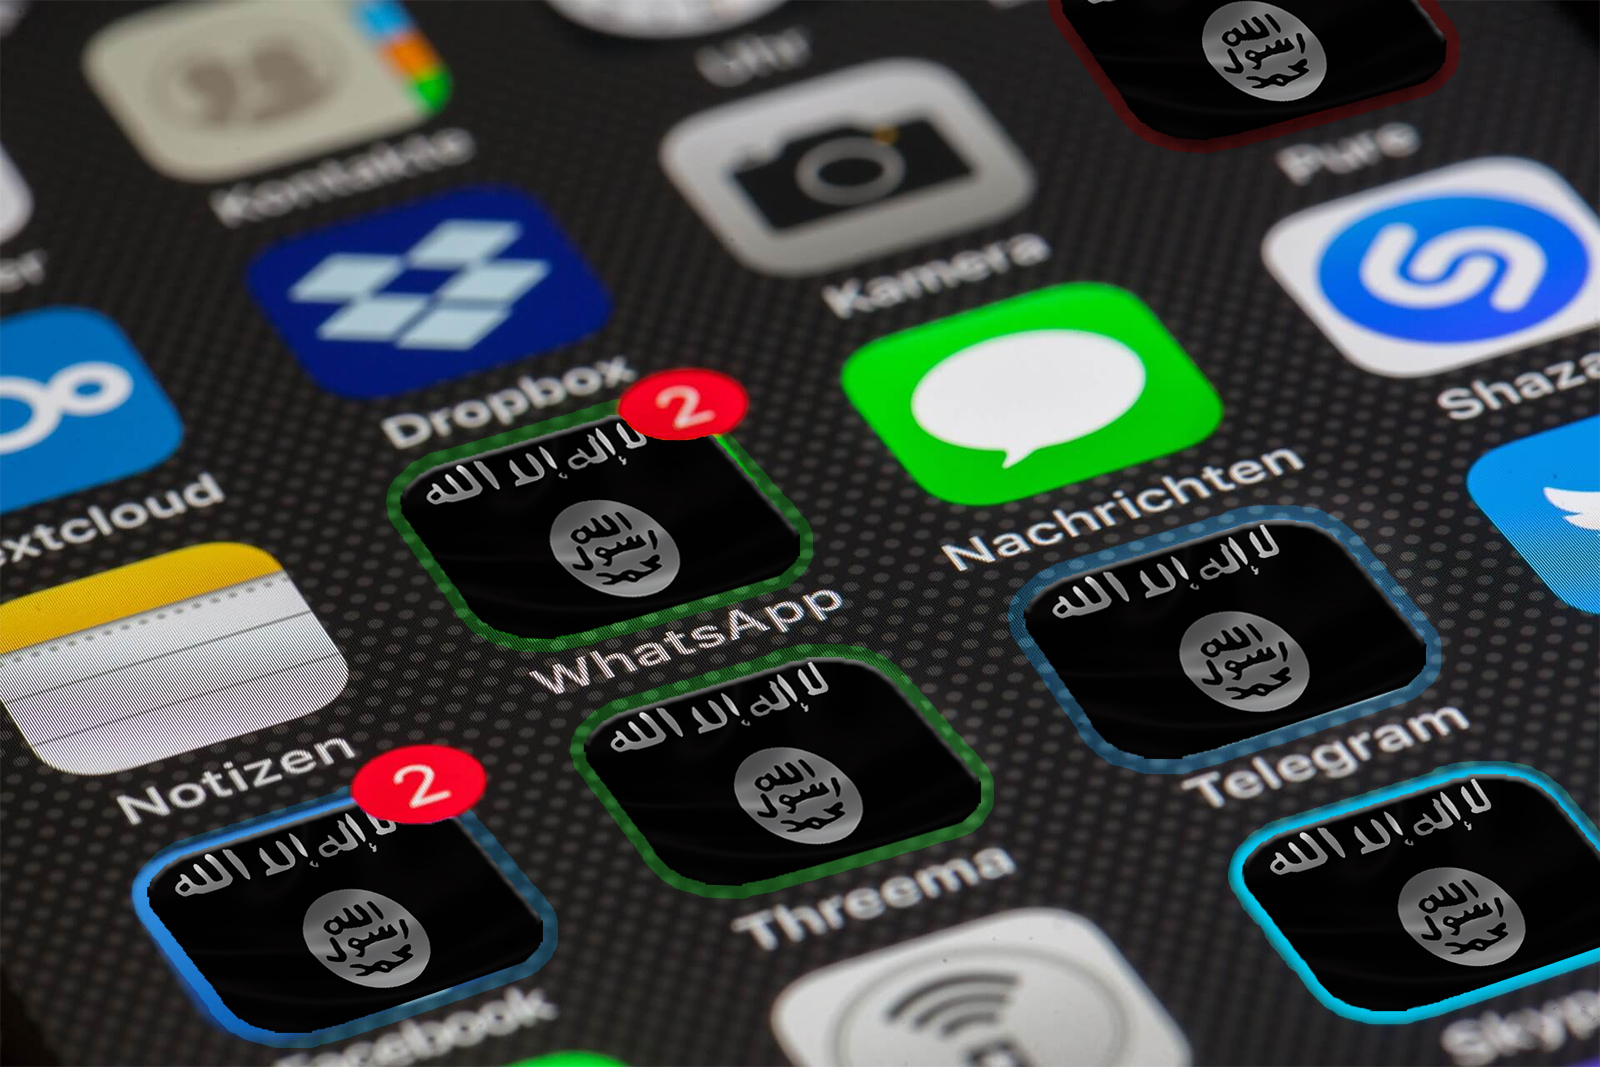 RIAC :: Cyber Caliphate: What Apps Are the Islamic State Using?